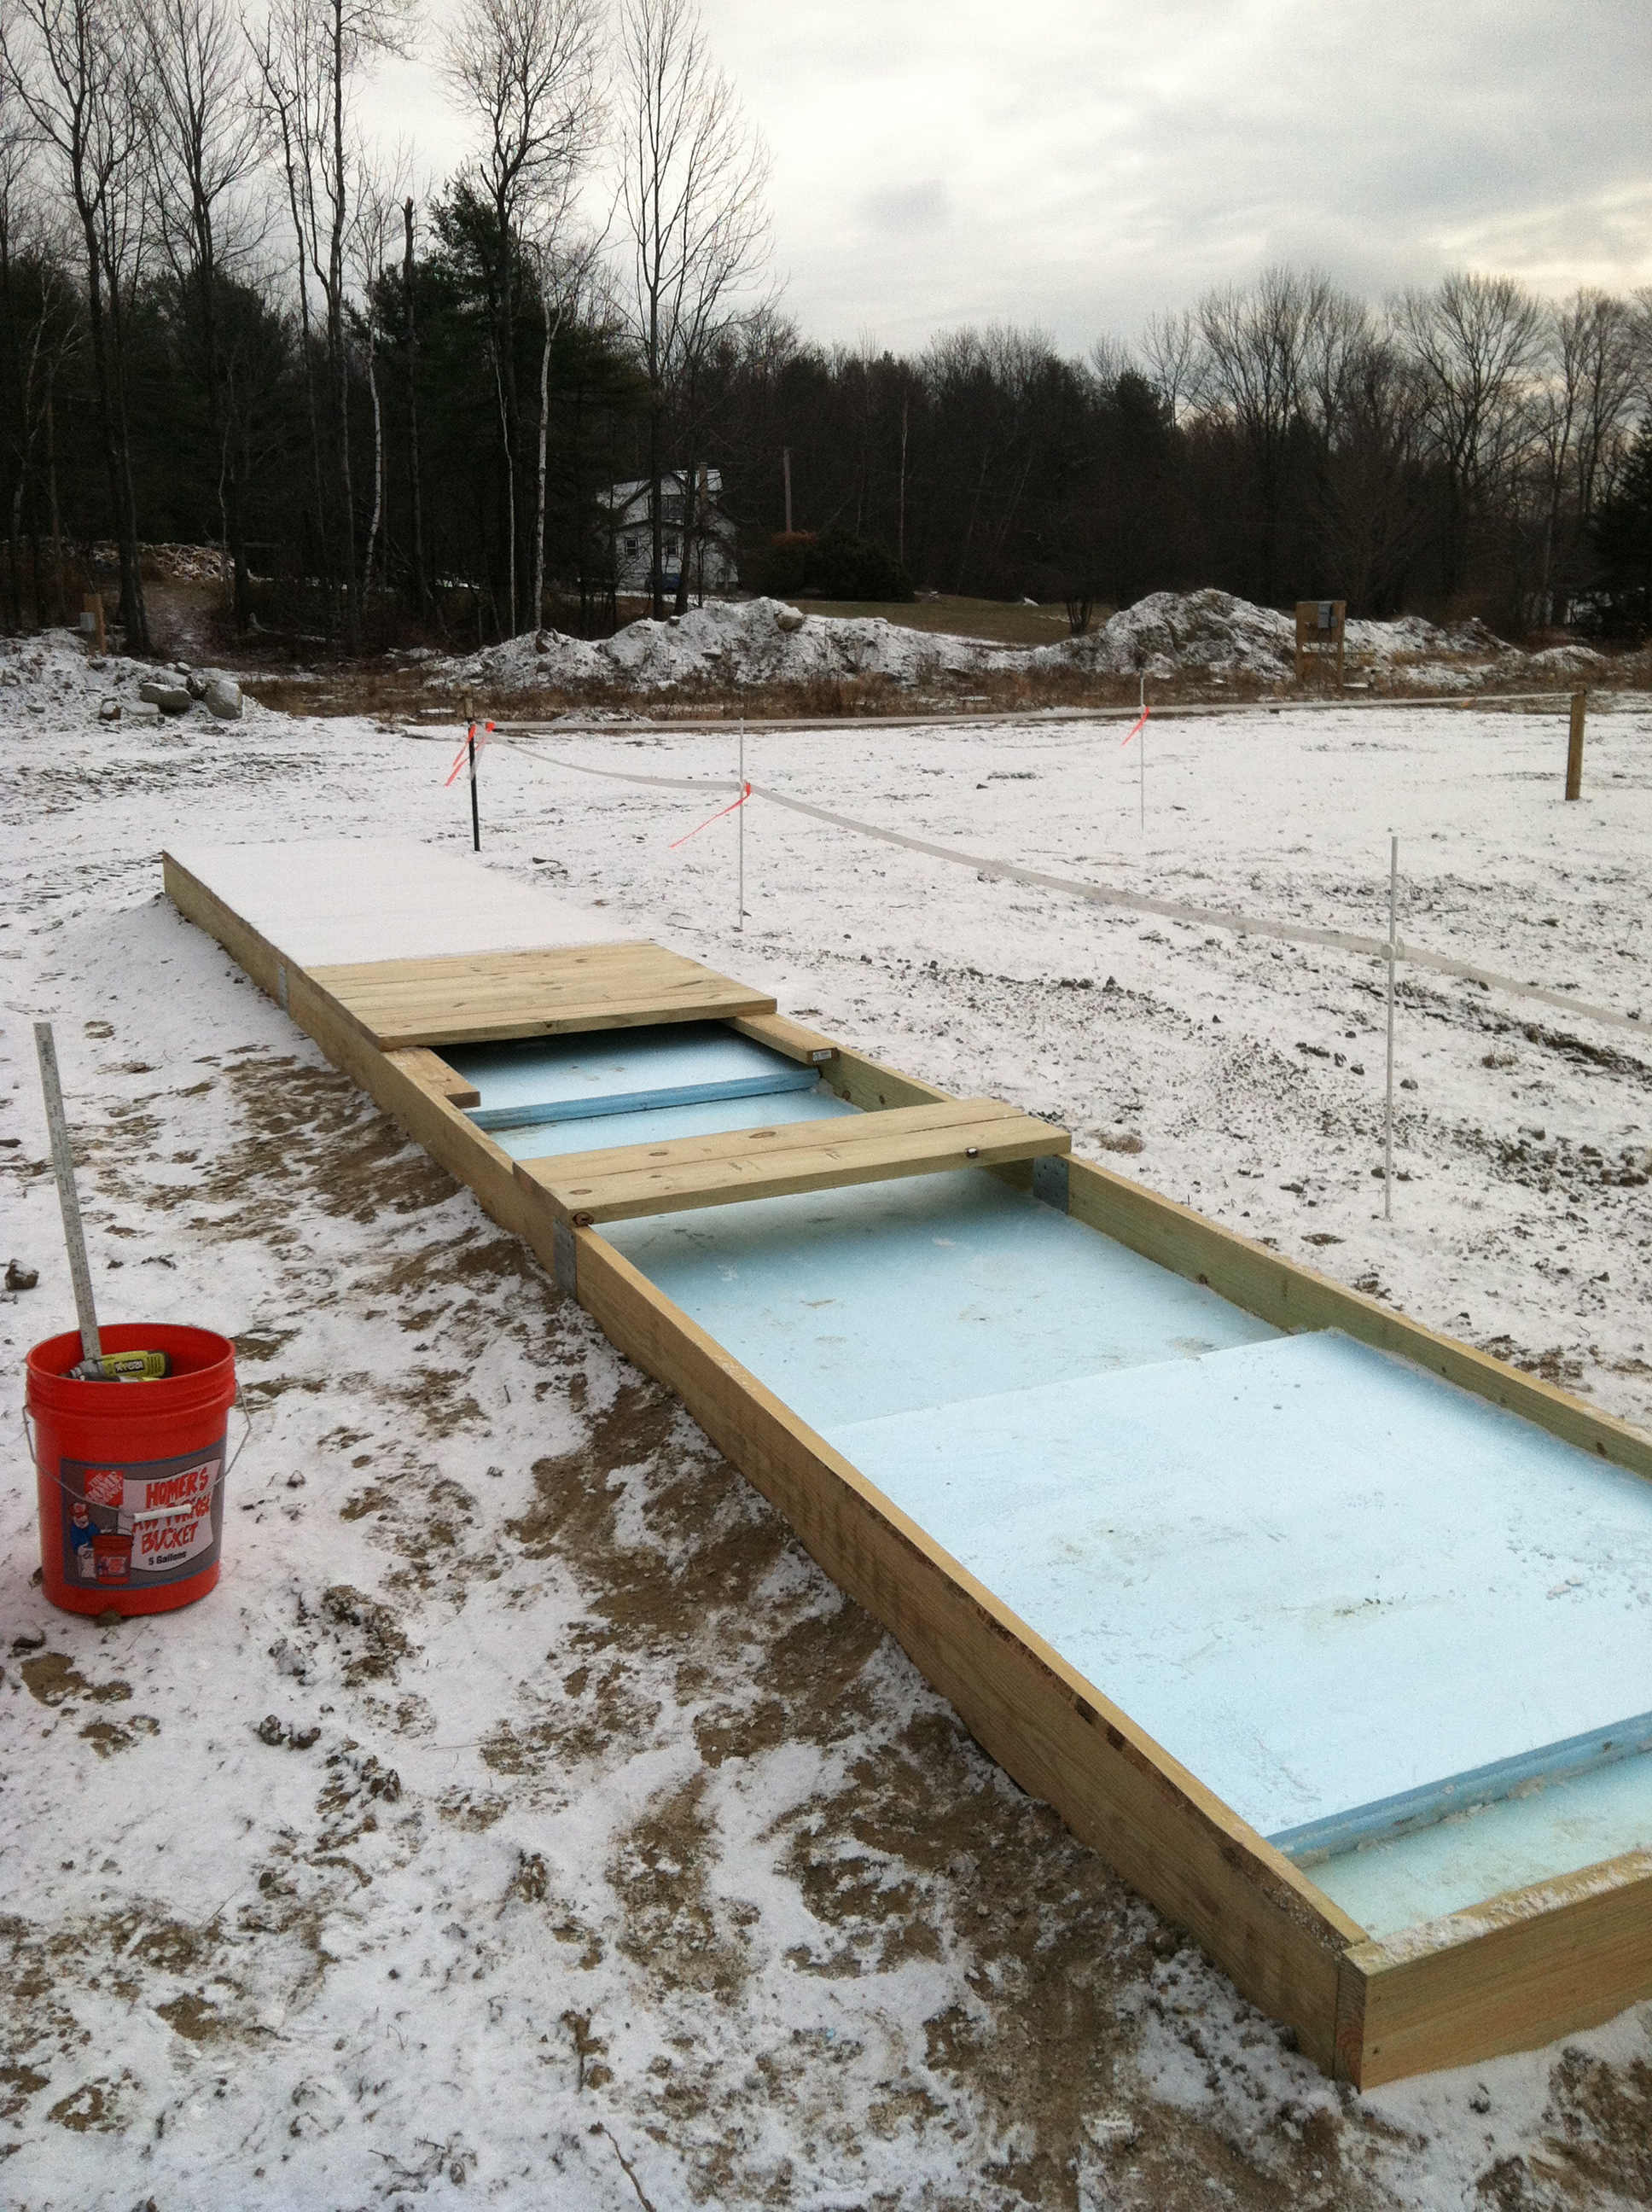 Insulating and covering the hatch covers on the underground tank.